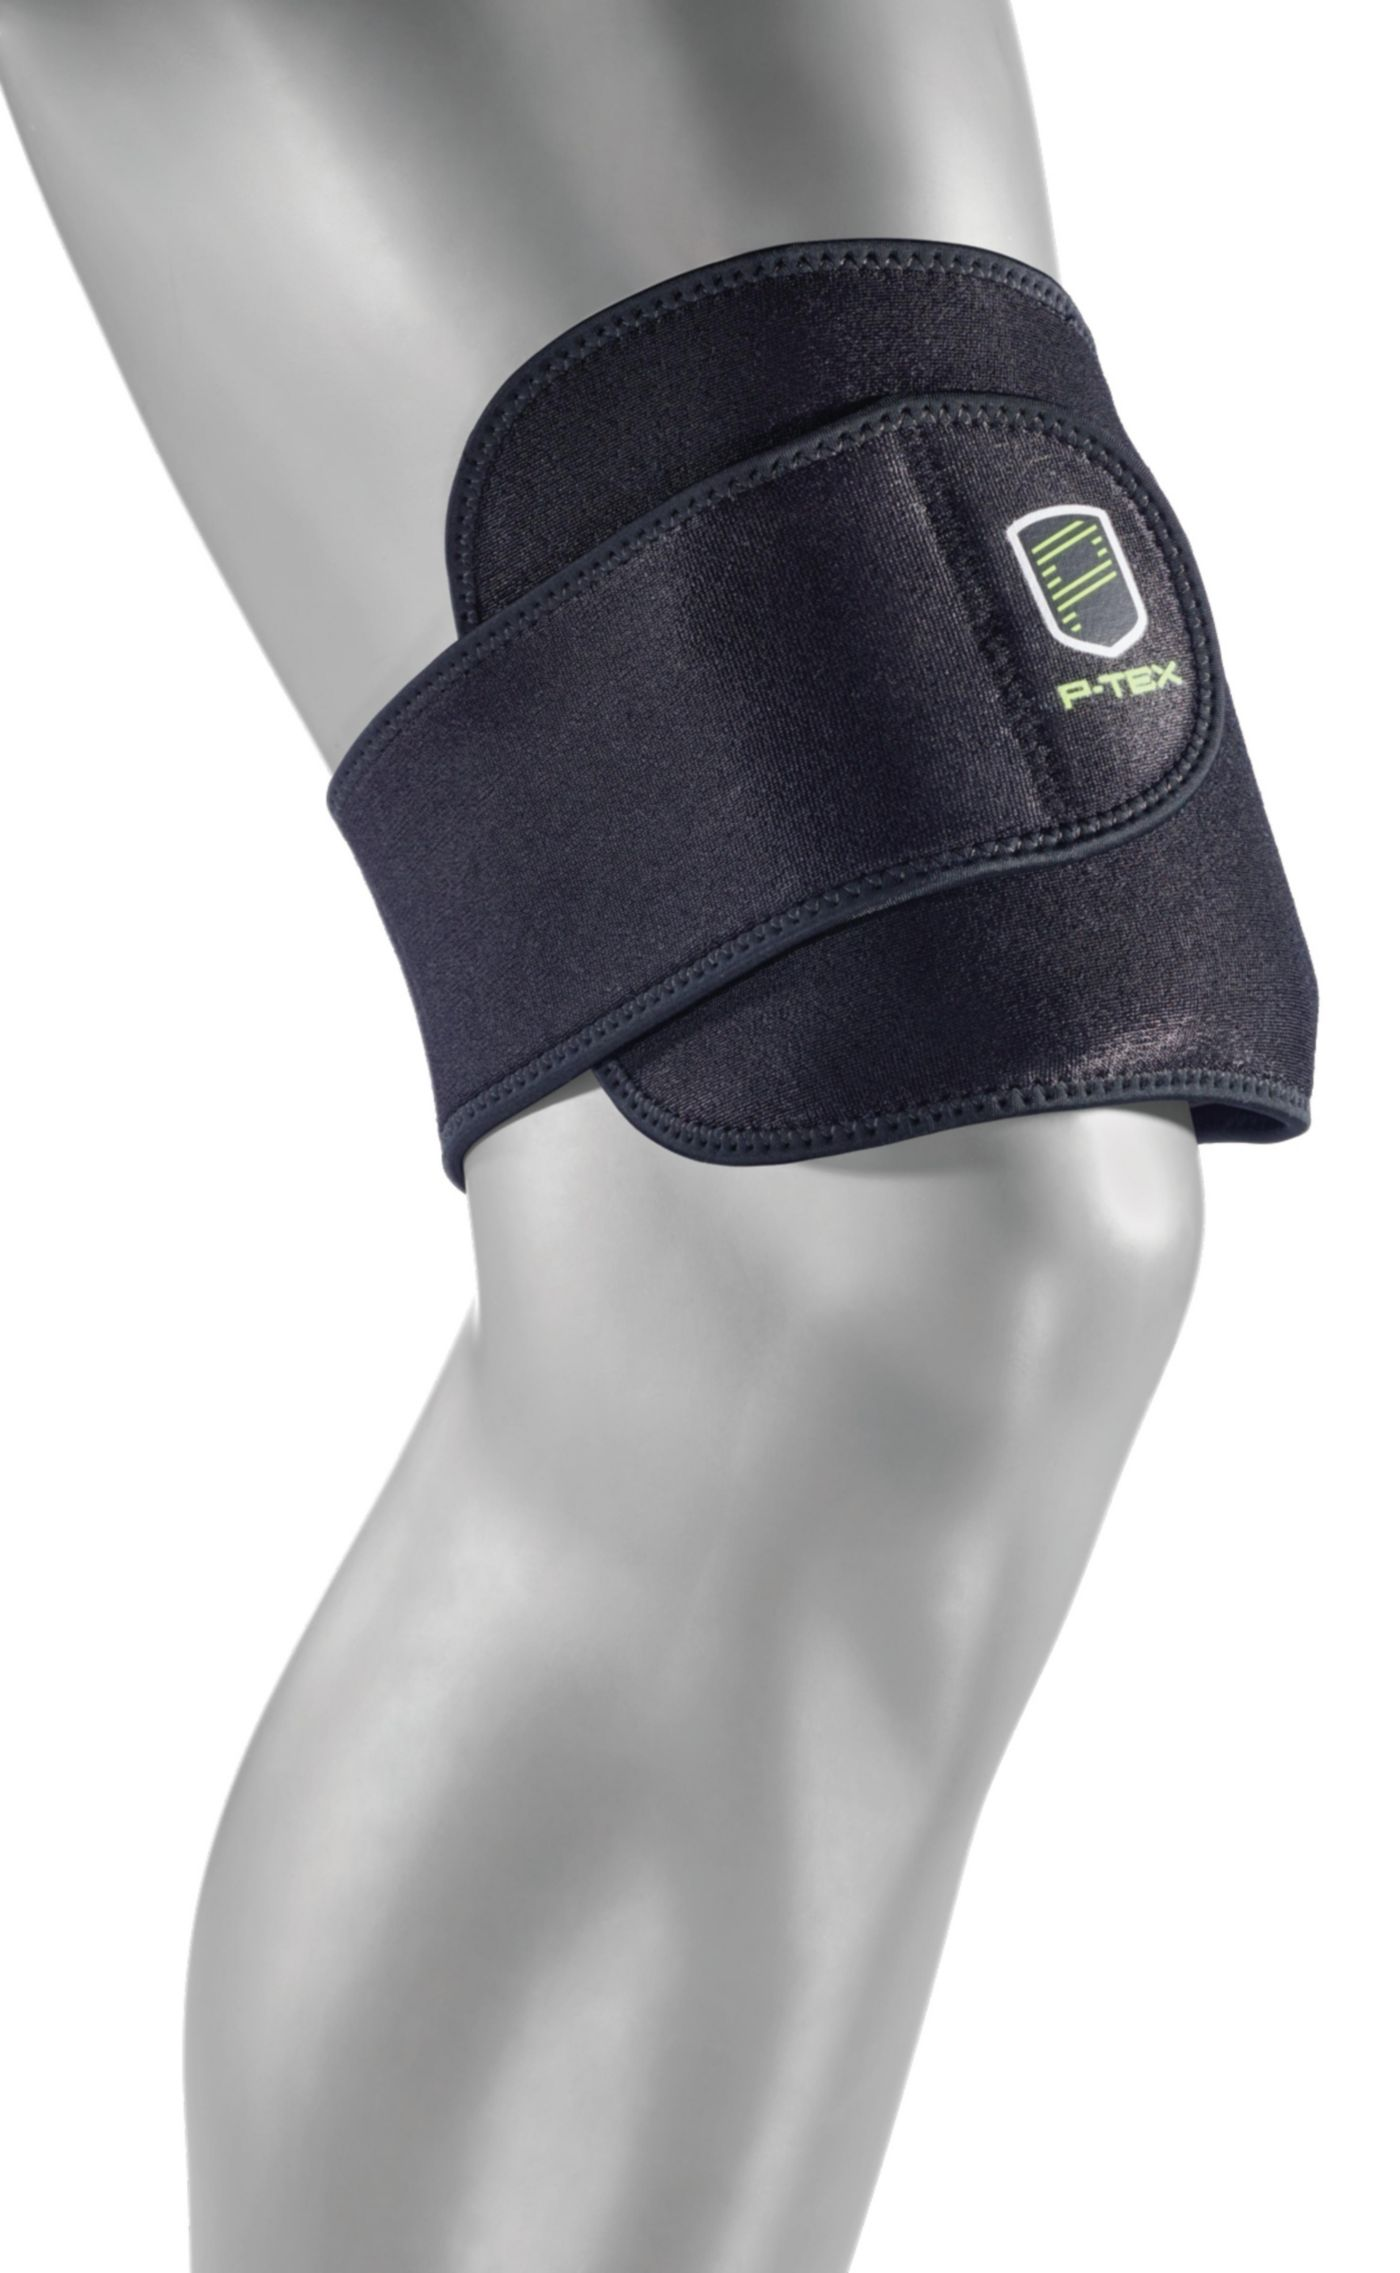 P-TEX Reusable Hot And Cold Pack With Wrap